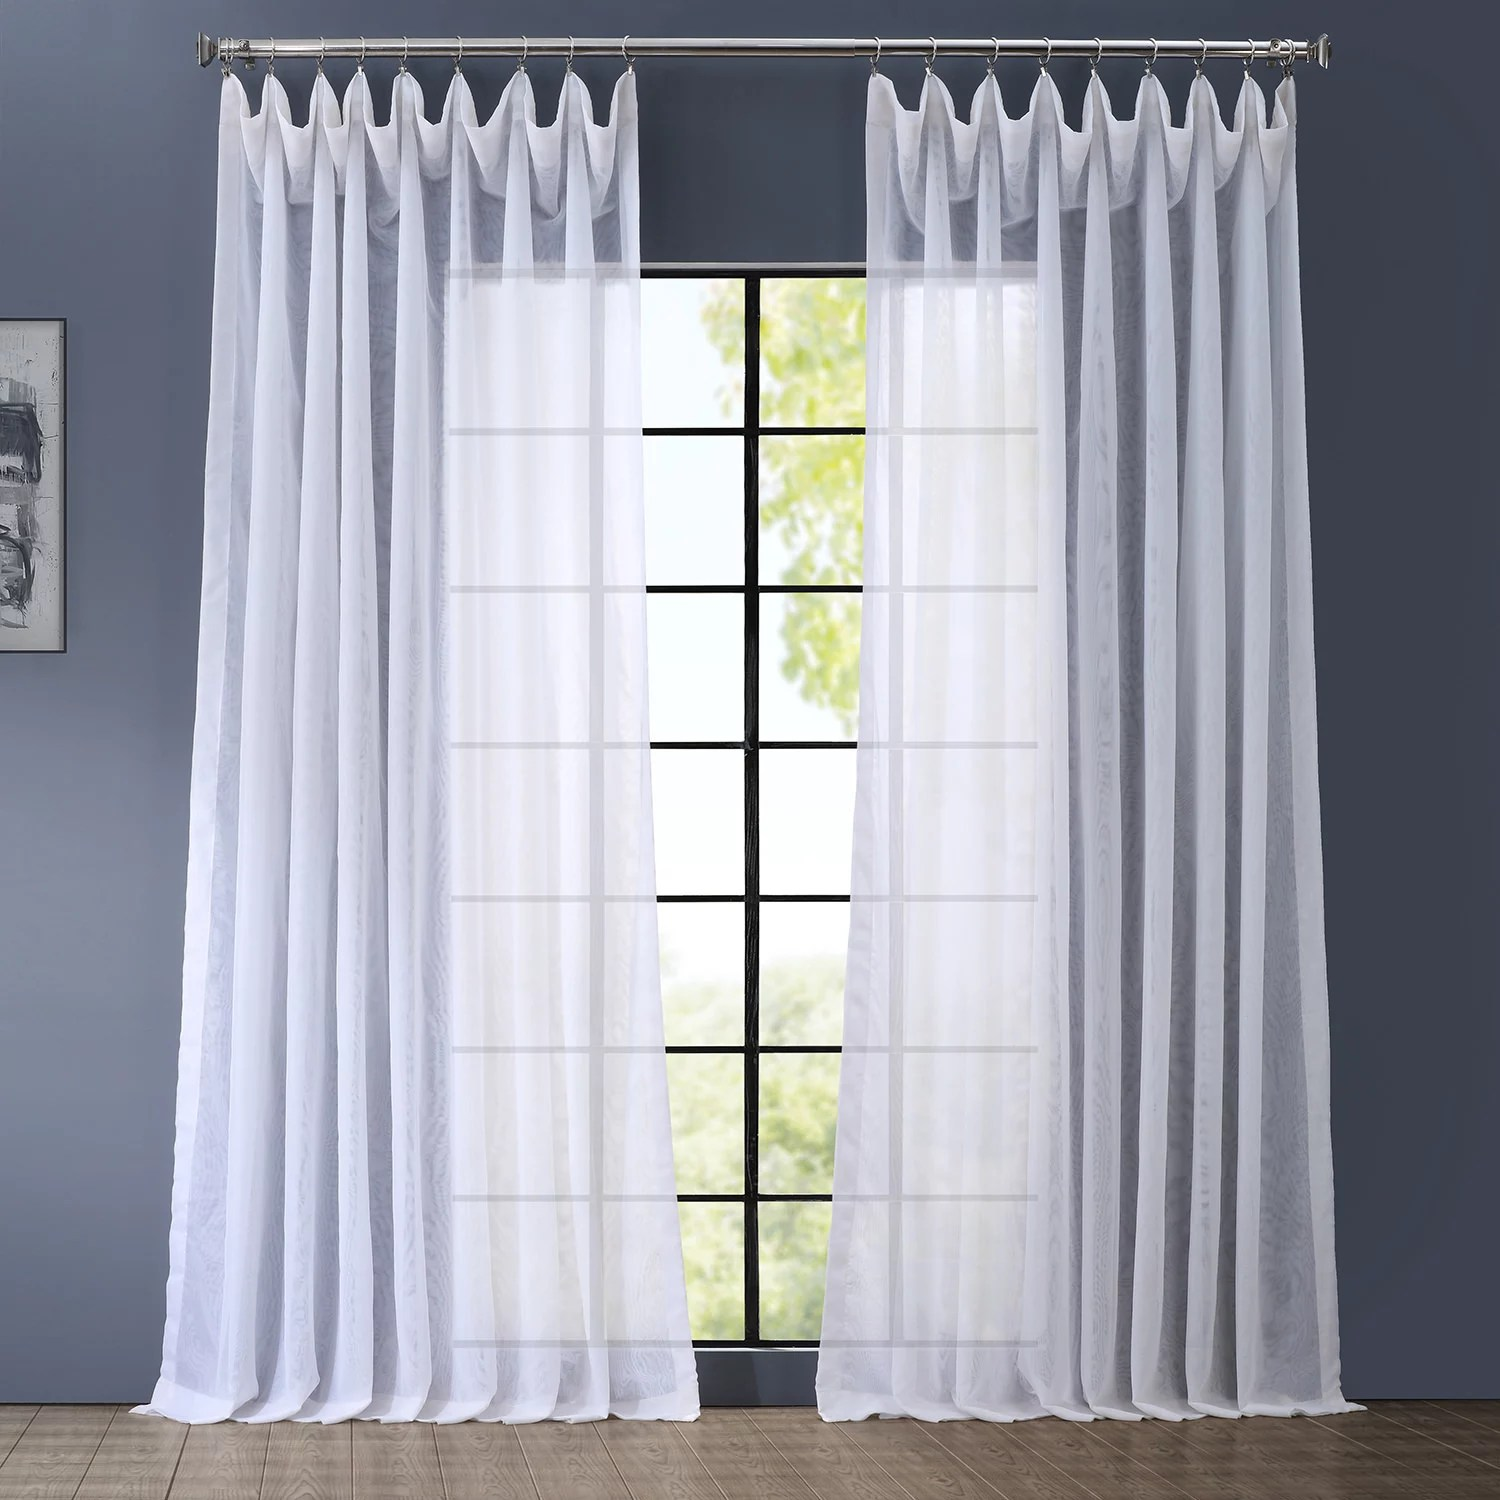 Curtain For Double Window Eff 1 Panel Signature Sheer Double Wide Window Curtain